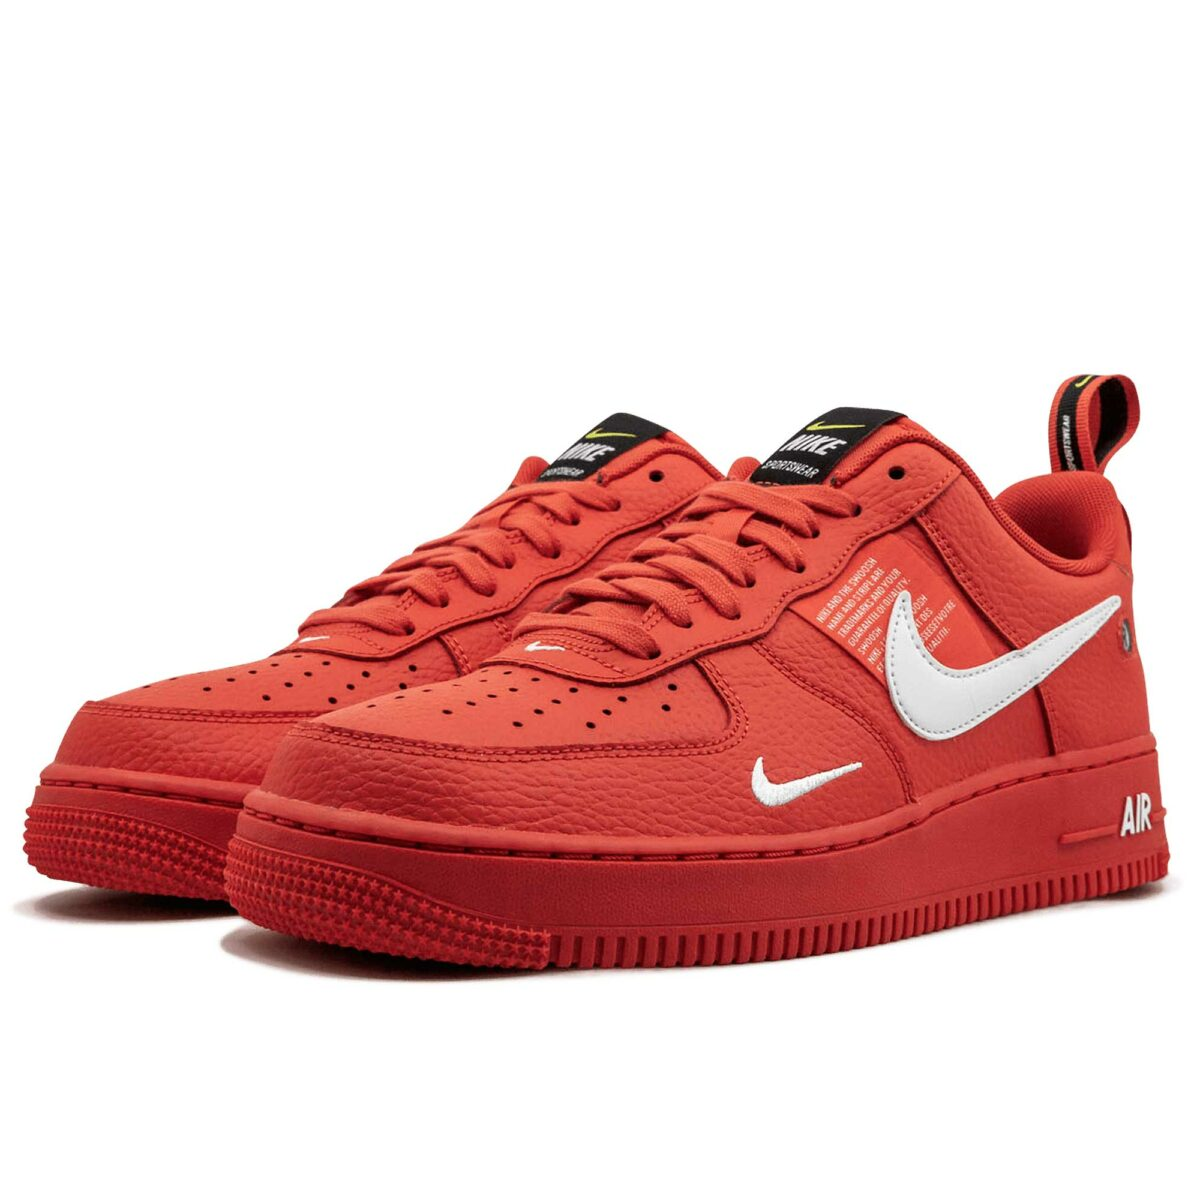 nike air force 1 07 lv8 utility red AJ7747_800 купить